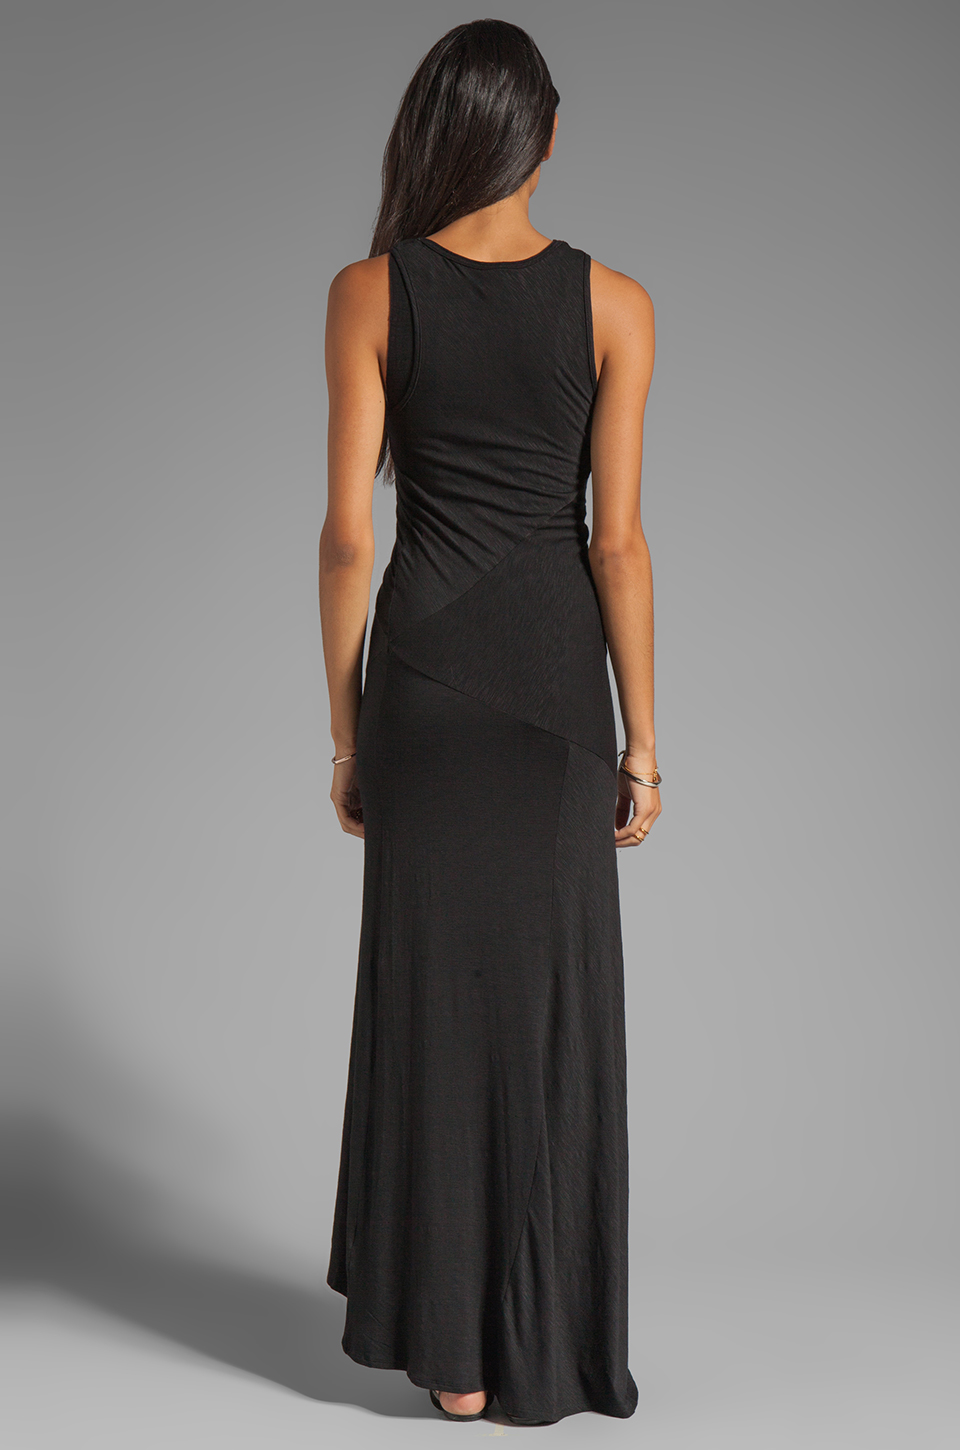 dolan Classic Slub Maxi Dress in Black